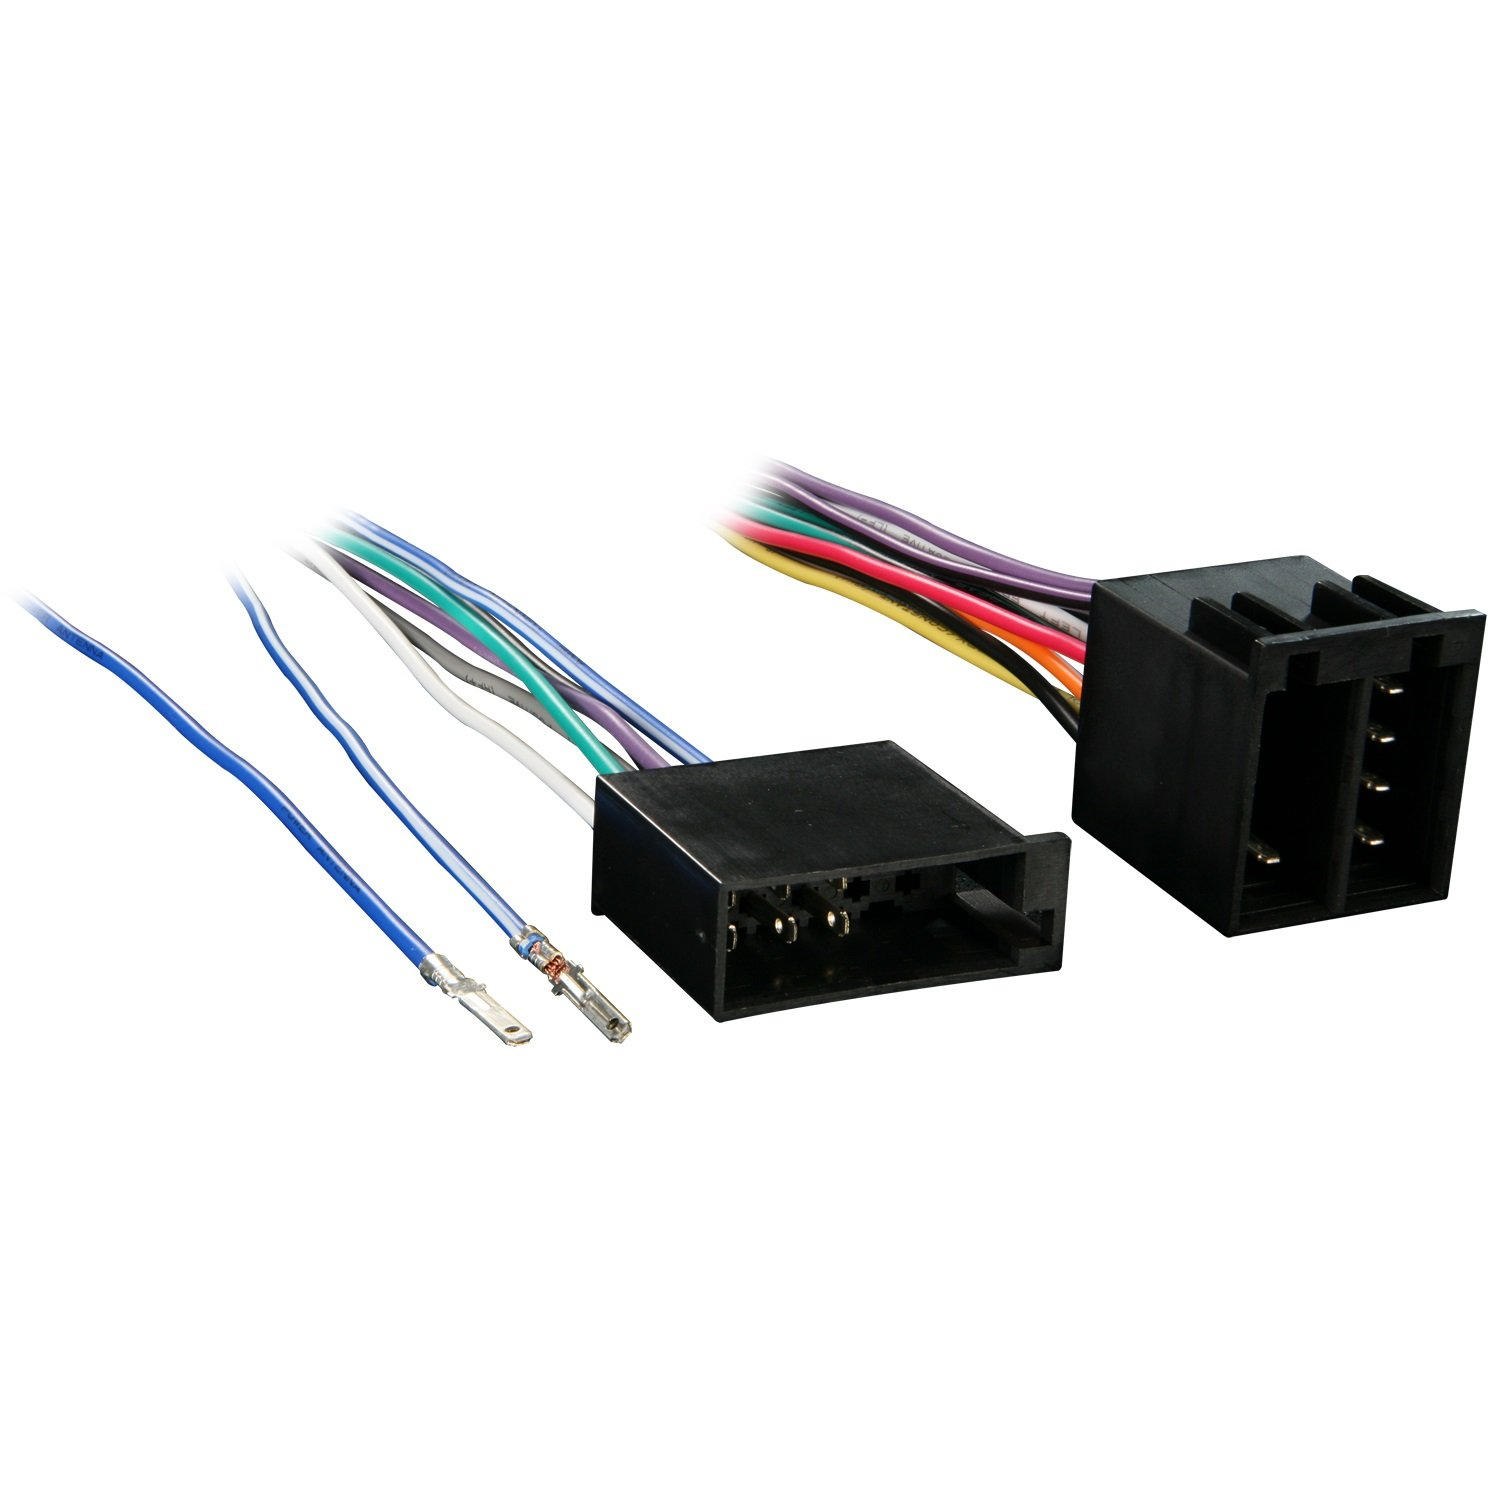 61A%2Bmi4eeeL._SL1500_ amazon com metra 70 9002 radio wiring harness for vw 87 02  at bakdesigns.co